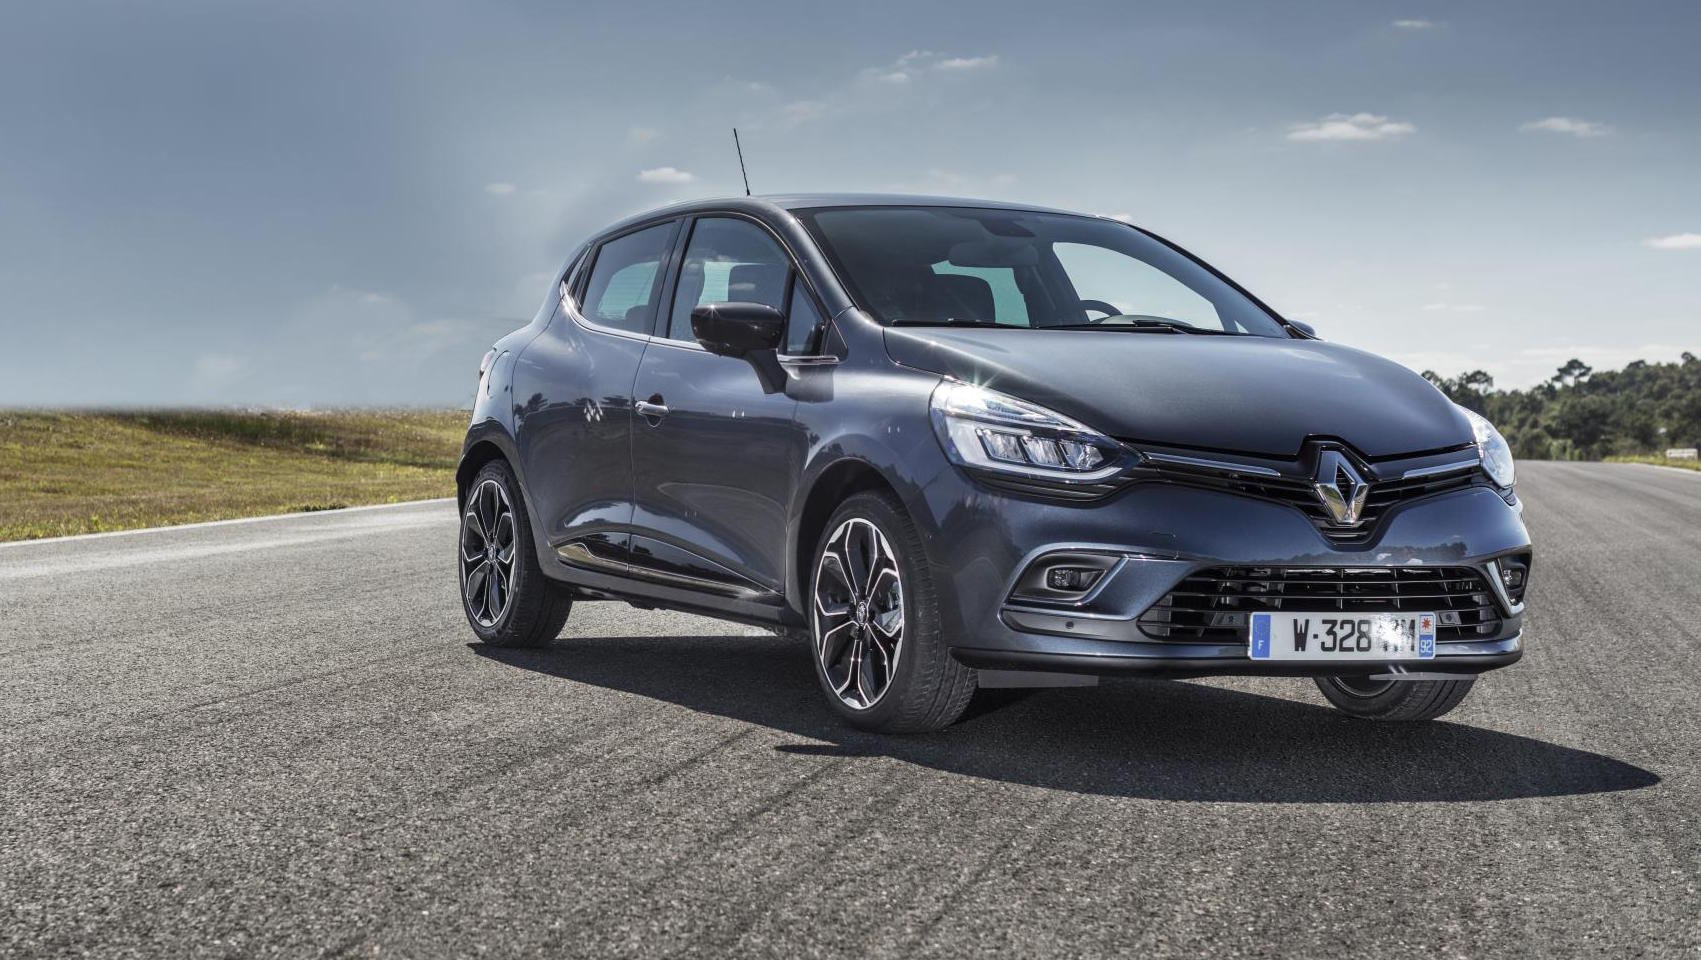 renault clio updated for 2017 more tech and two new engines. Black Bedroom Furniture Sets. Home Design Ideas